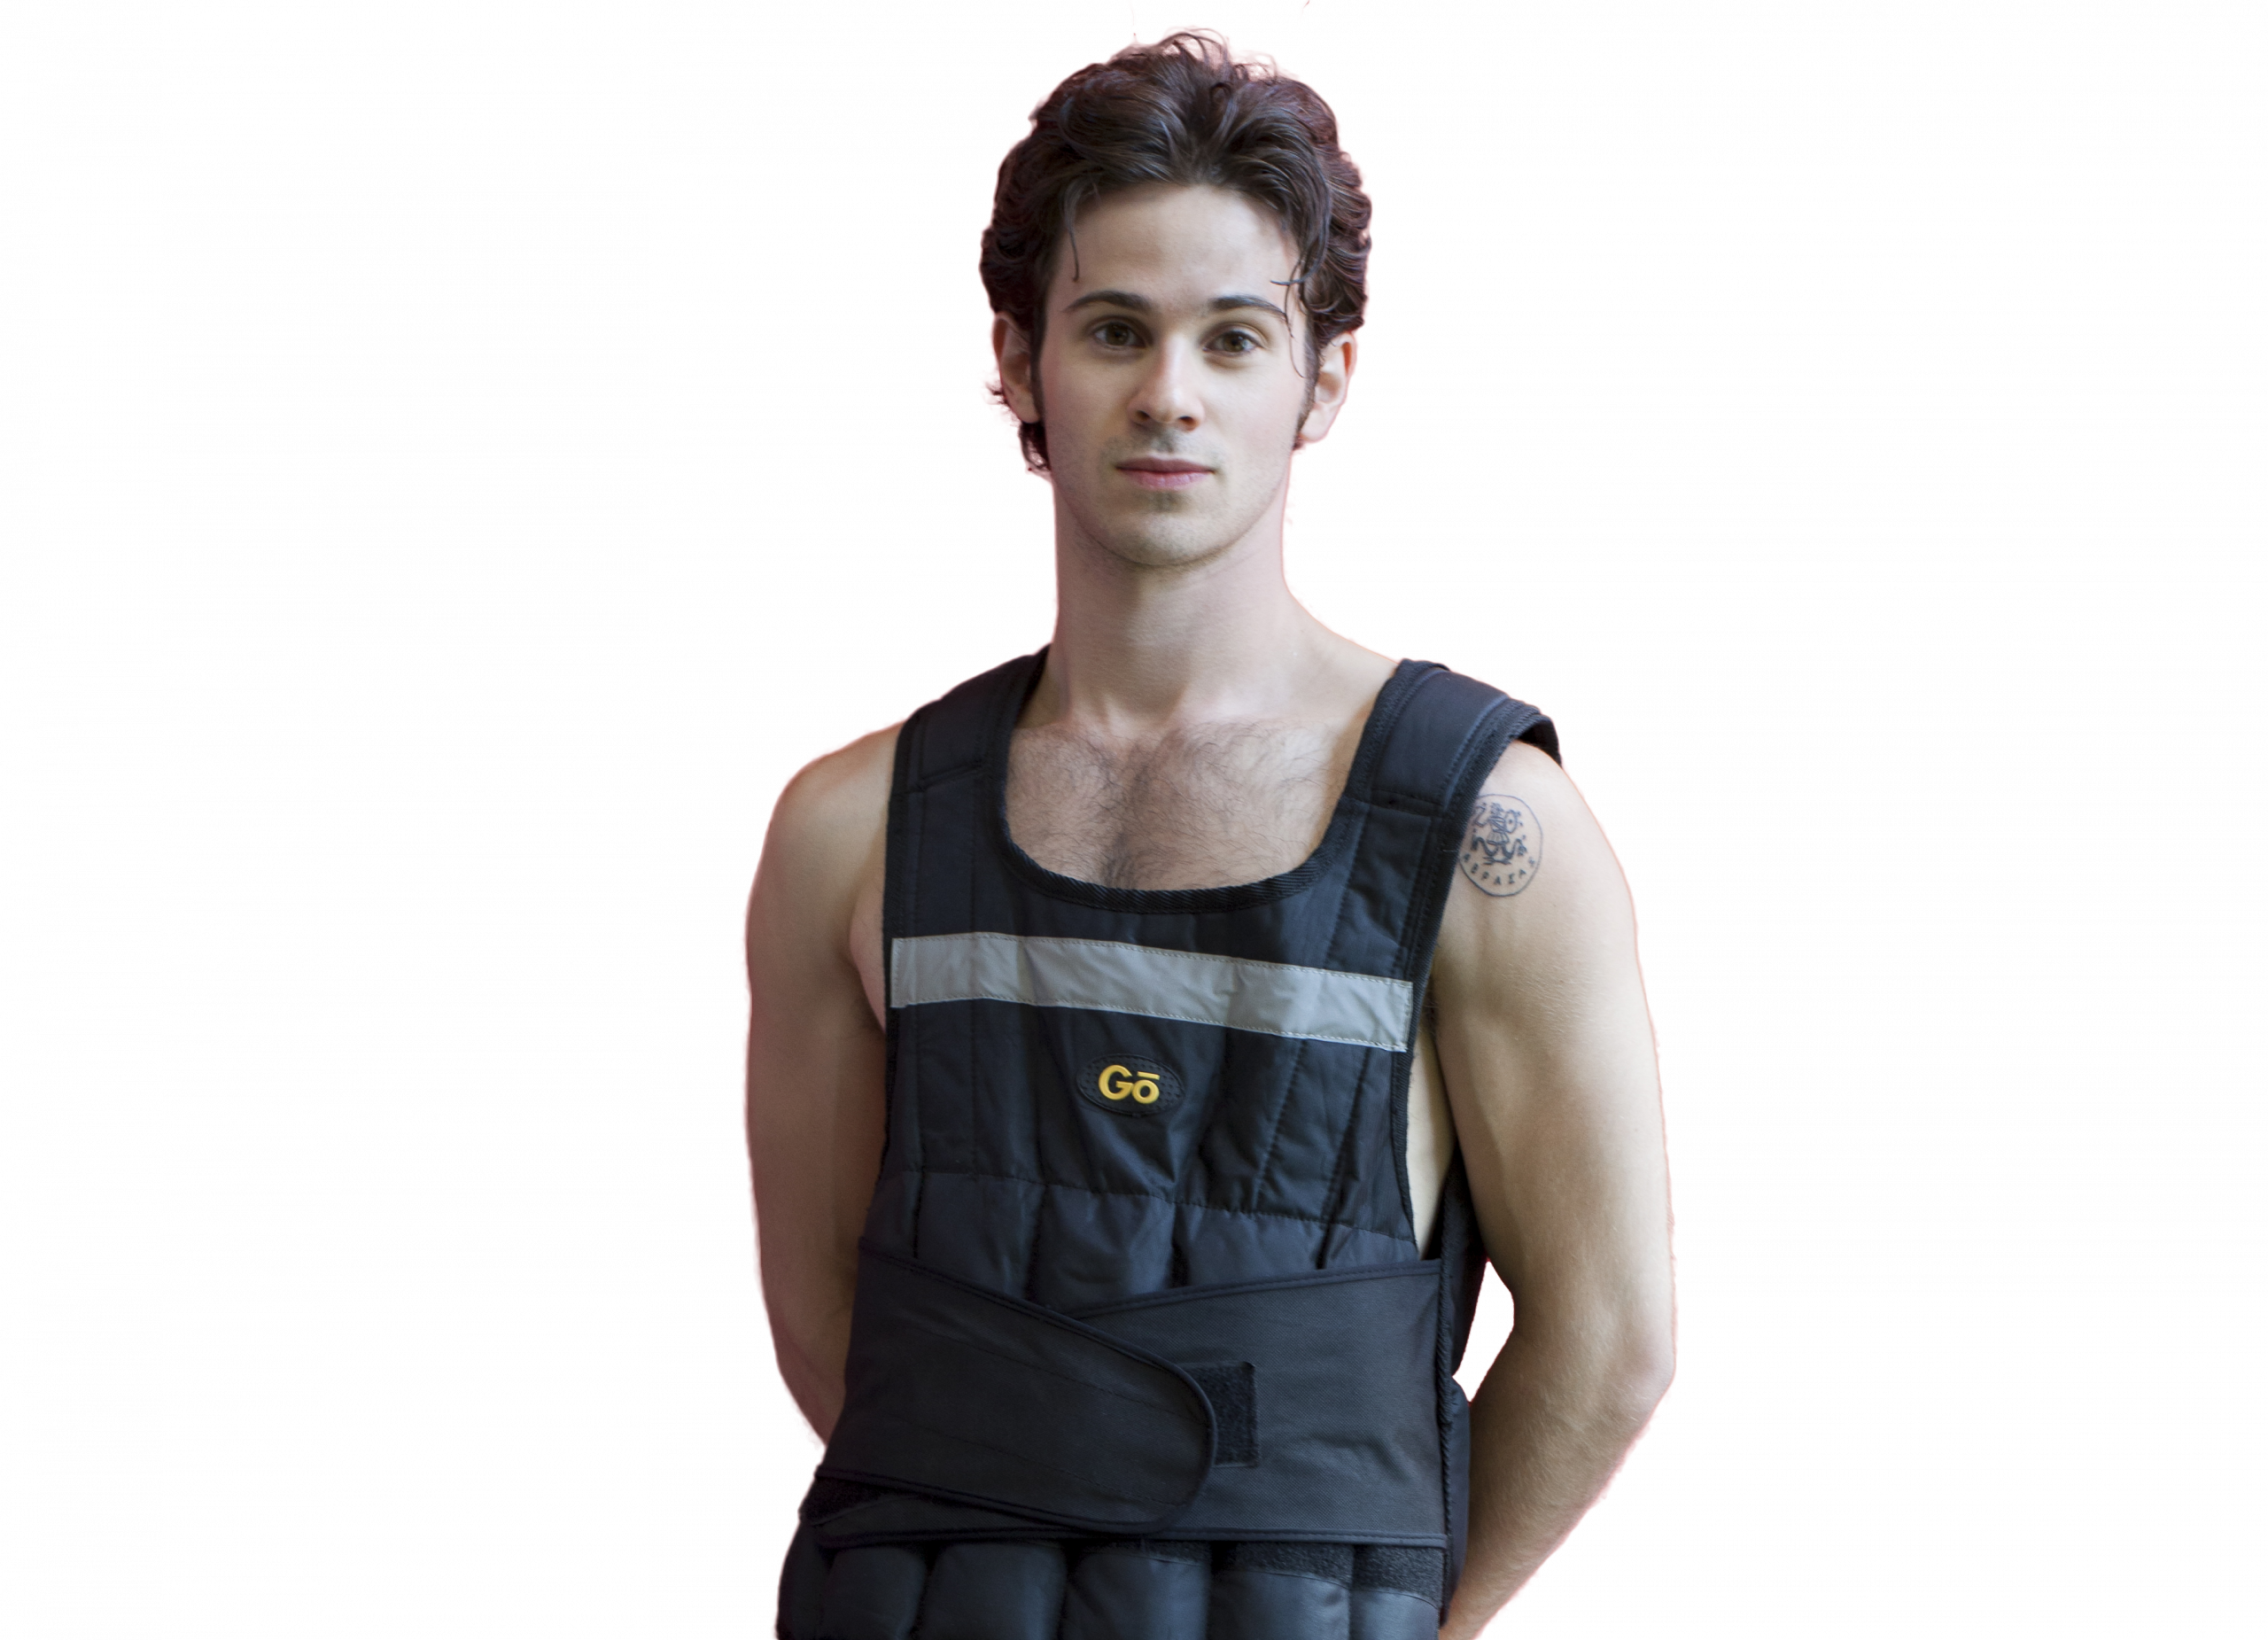 Personal Training Client Connor Paolo